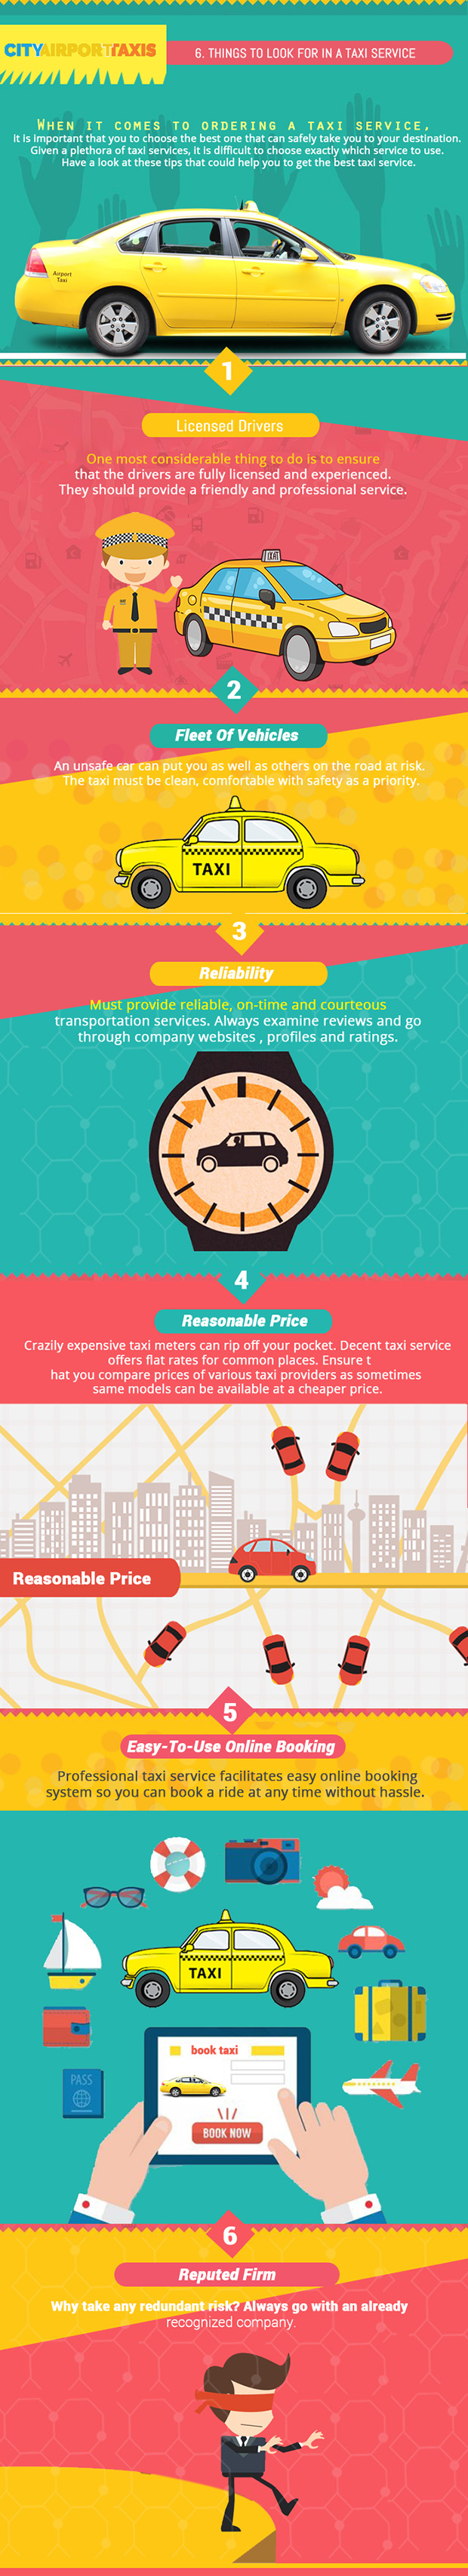 How to search for a good taxi service